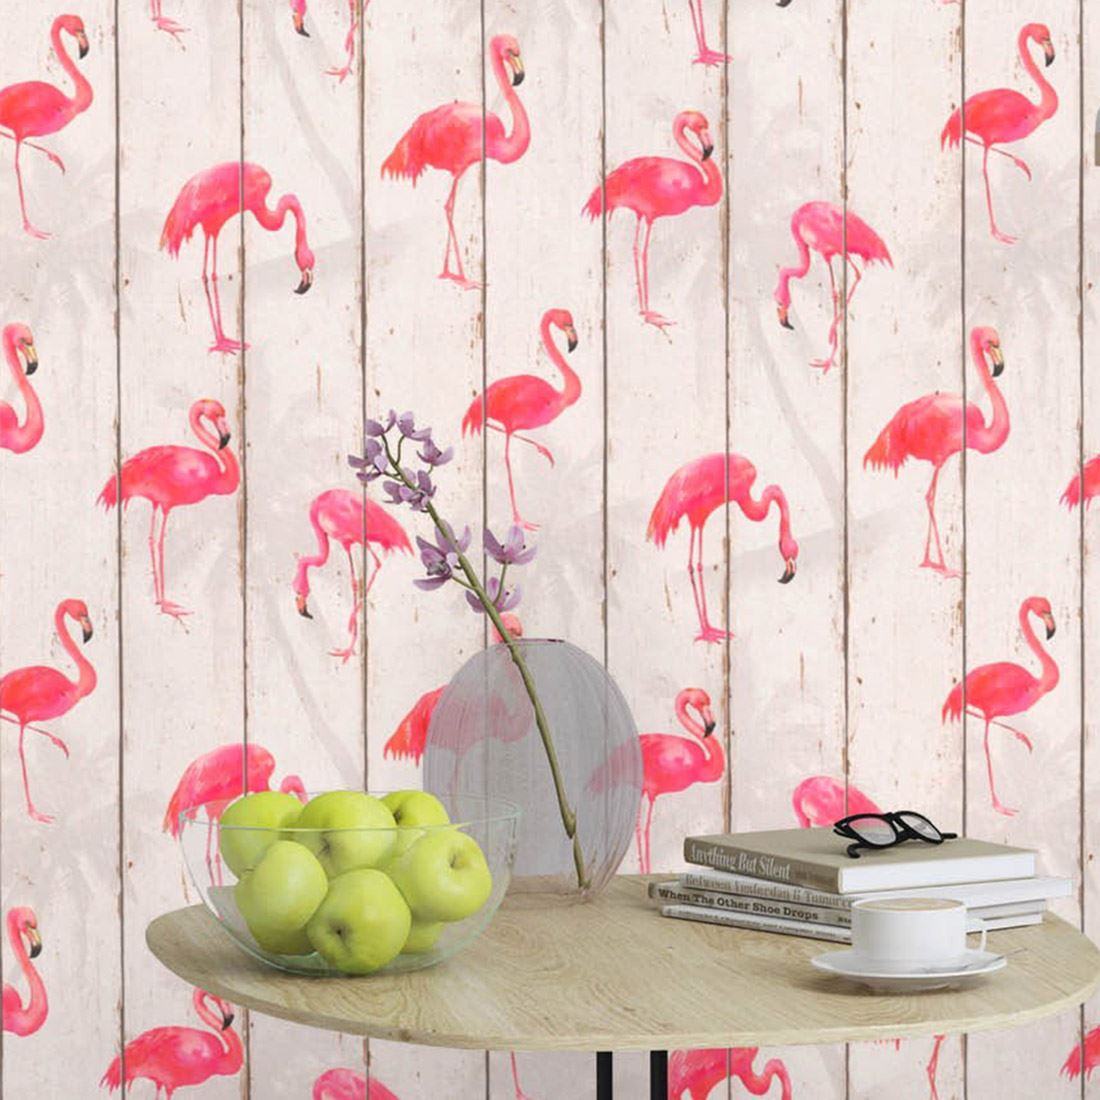 pink flamingo wallpaper 50 wallpapers art wallpapers. Black Bedroom Furniture Sets. Home Design Ideas